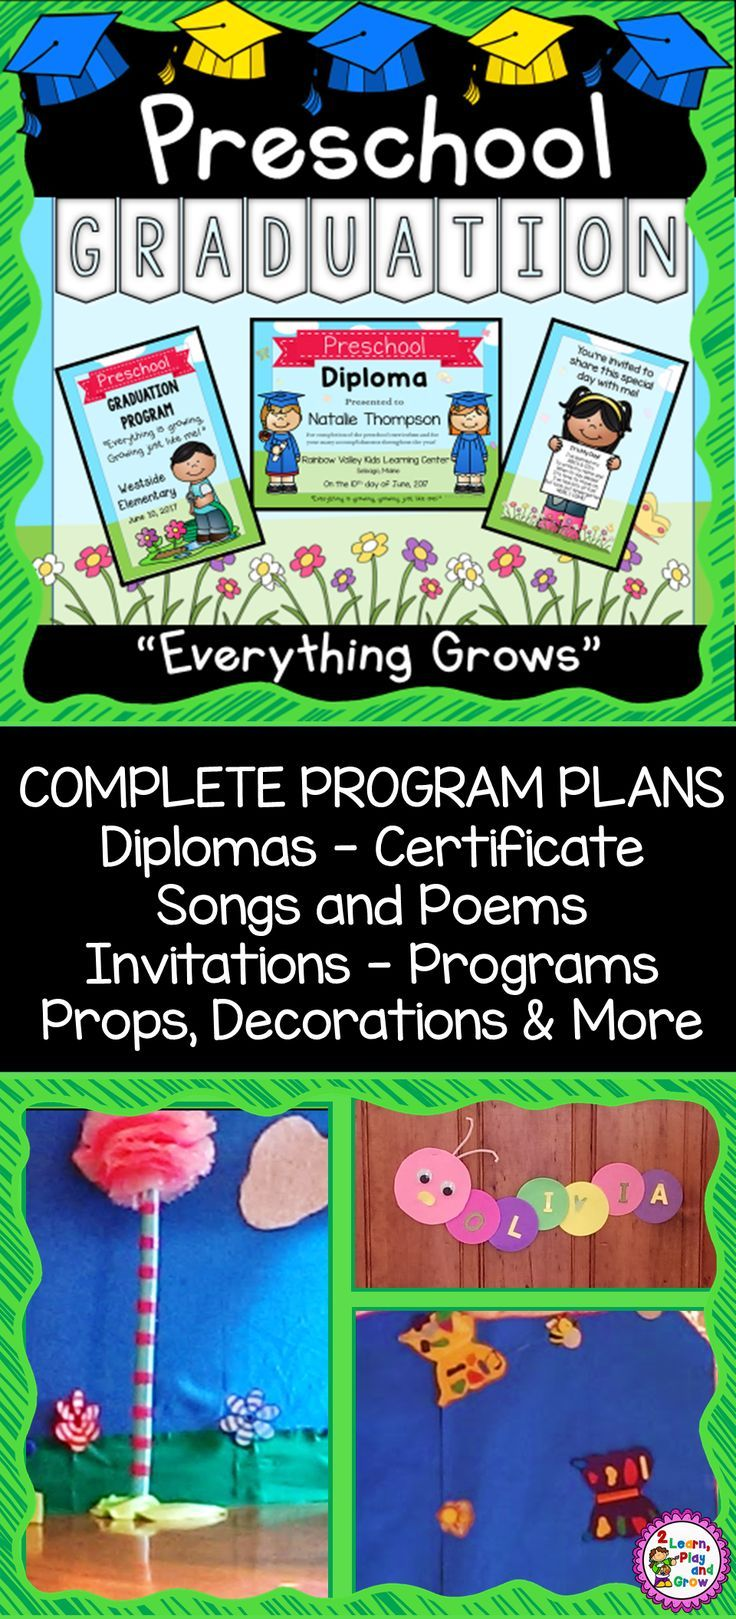 Preschool Graduation Diplomas Invitations Program Poems Songs